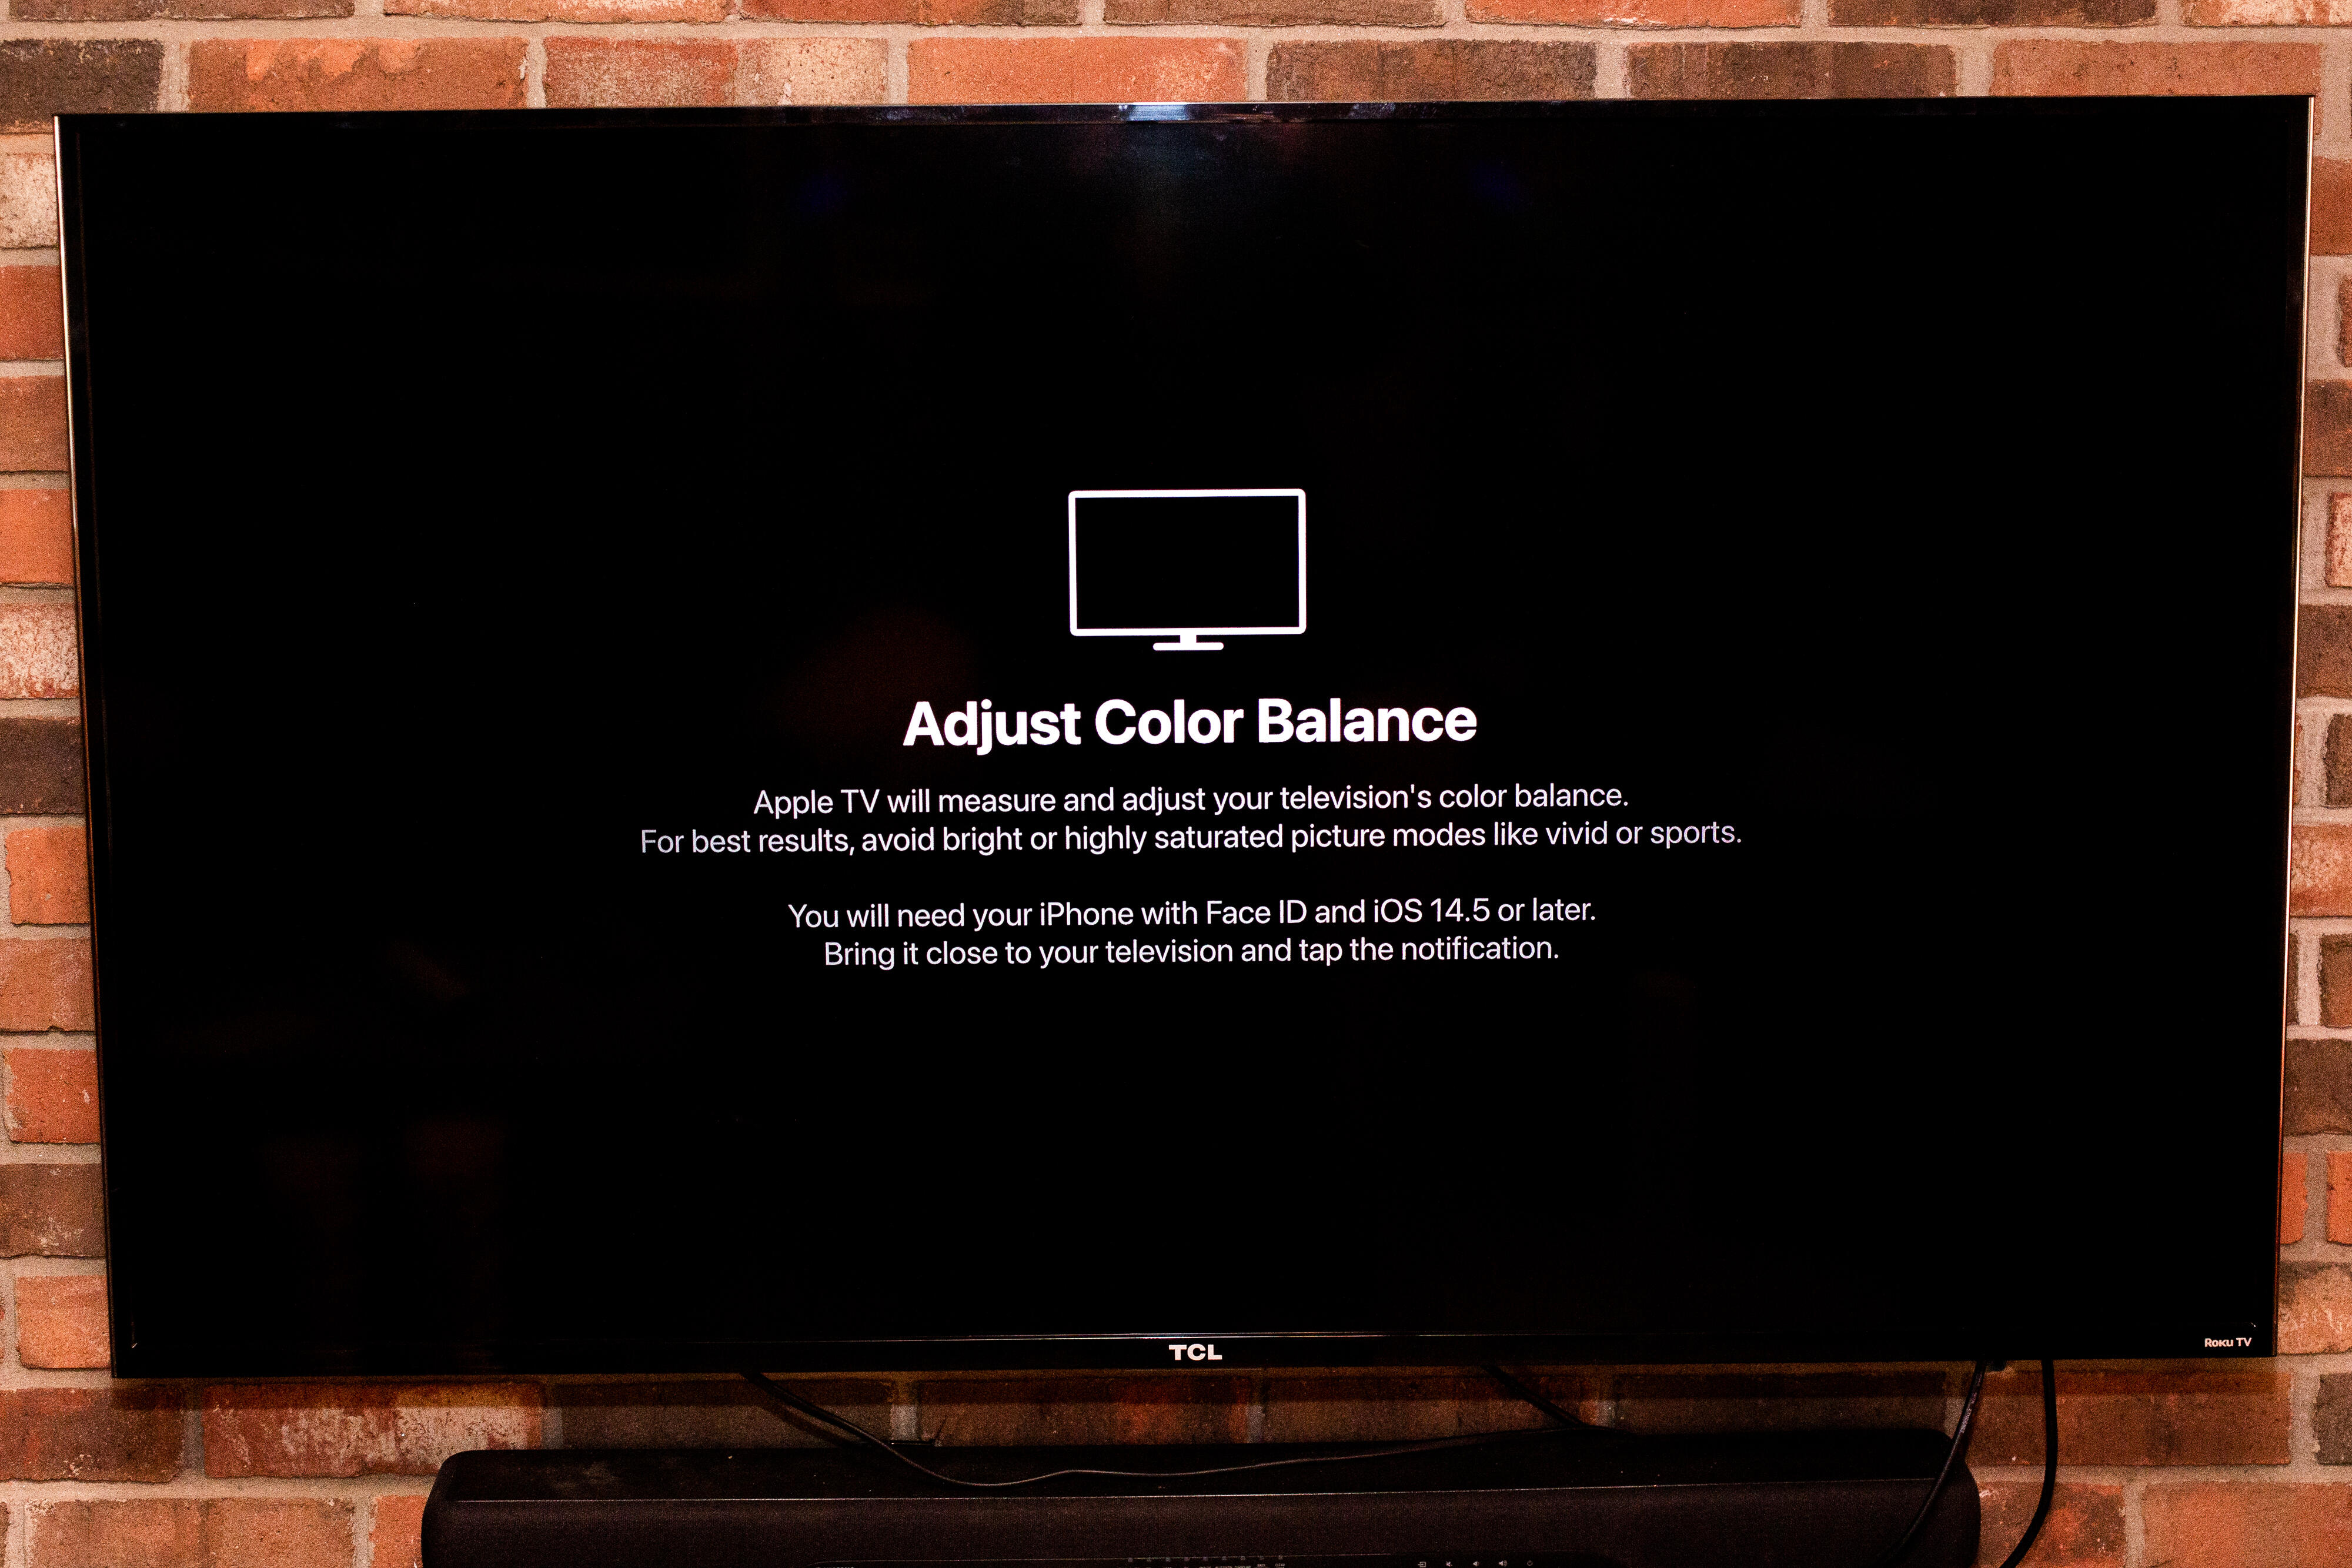 006-apple-tv-screen-calibration-with-ios-14-5-iphone-face-detection-camera